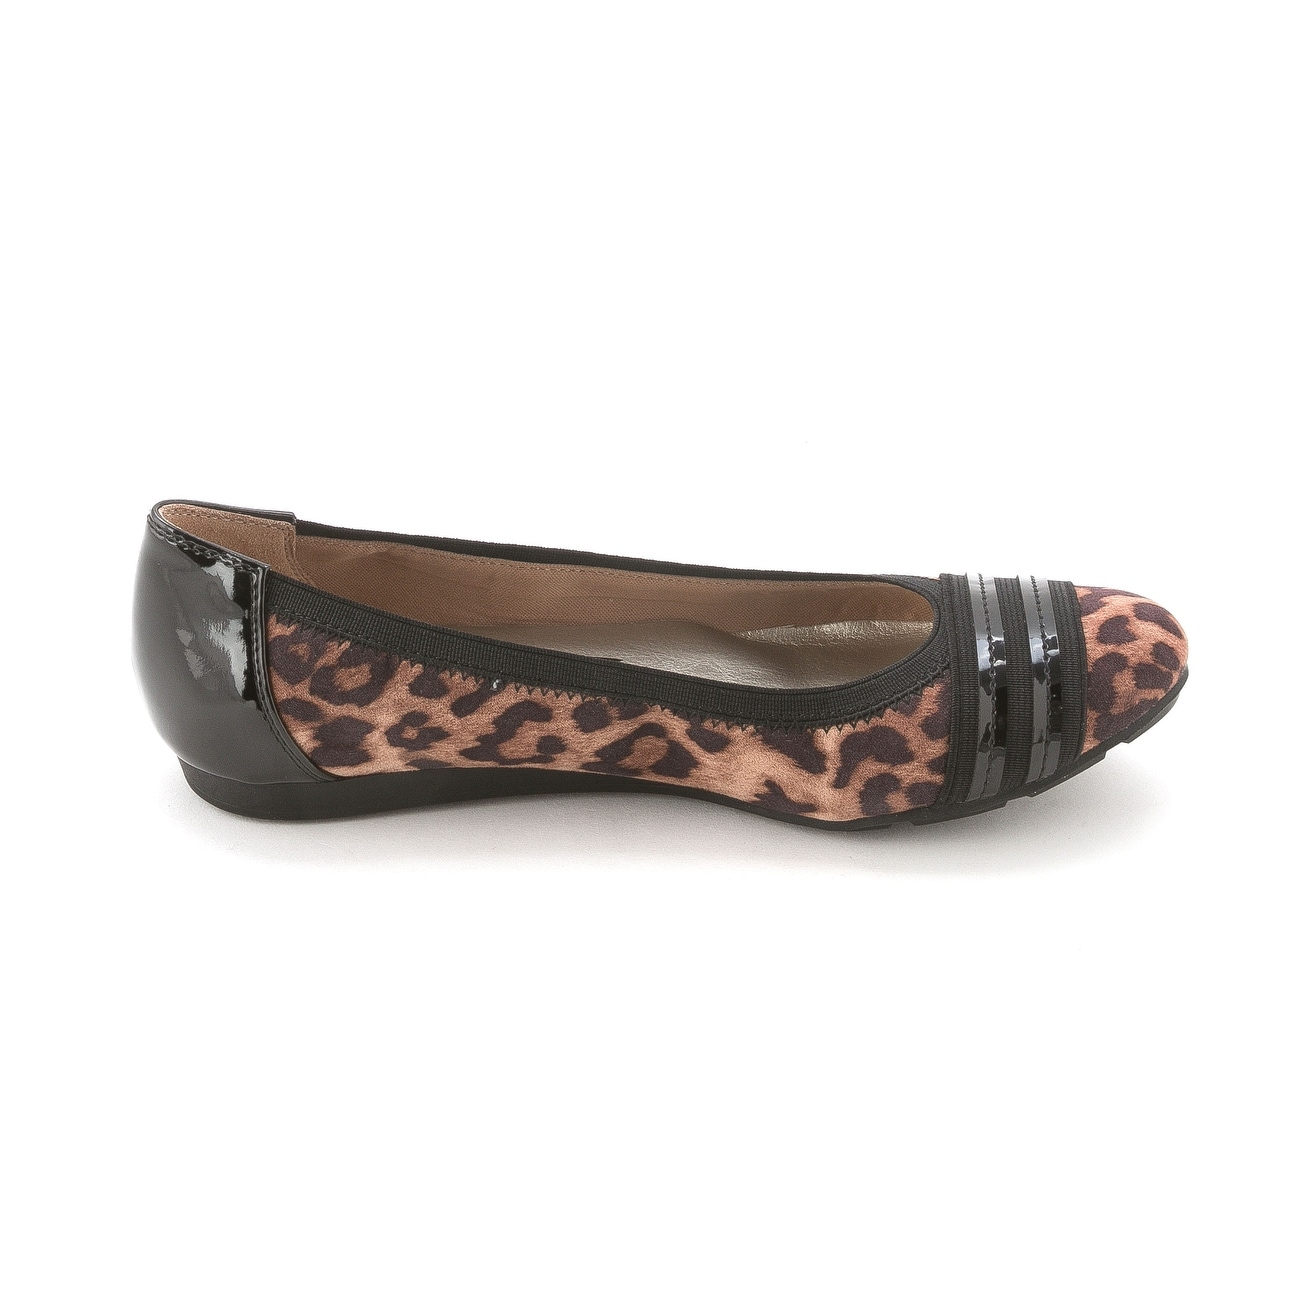 b161c591c64 Shop Anne Klein Womens ATWORTH Cap Toe Ballet Flats - Free Shipping On  Orders Over  45 - Overstock - 14537695